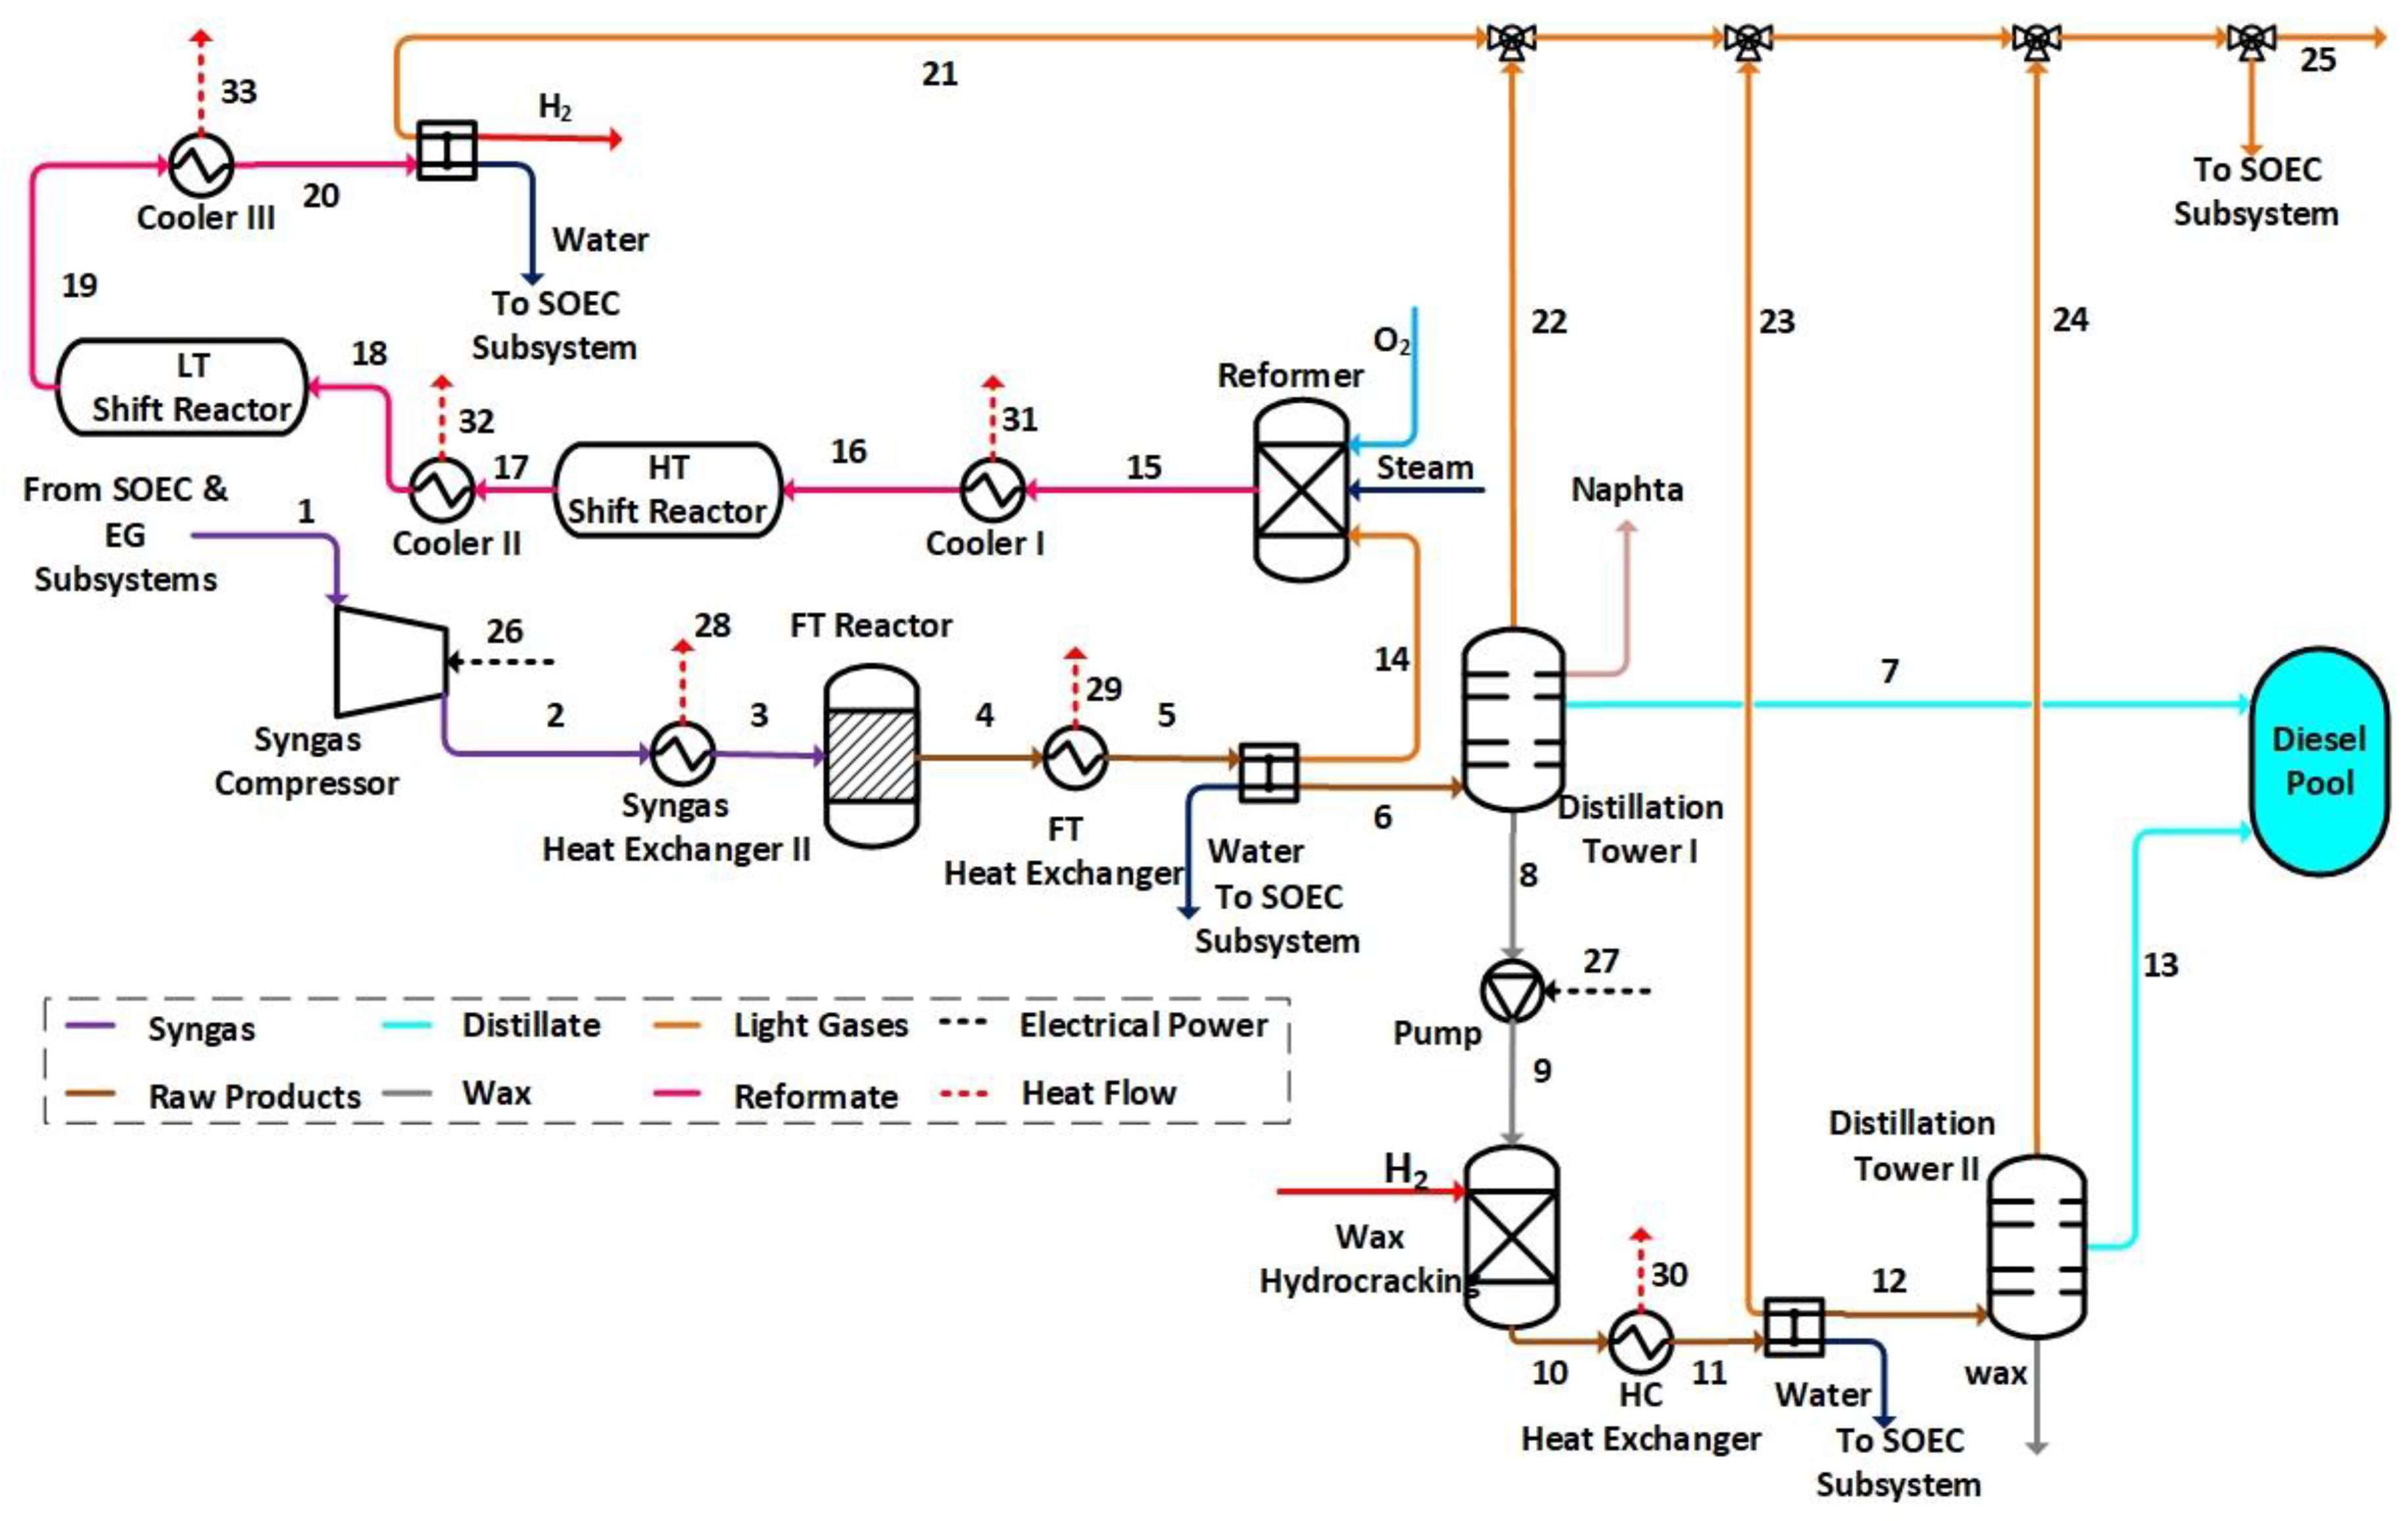 Energies Free Full Text Synthetic Diesel Production As A Form Of Heating Diagram Likewise Wind And Solar Battery Bank Wiring 11 01223 G004 Figure 4 Schematic